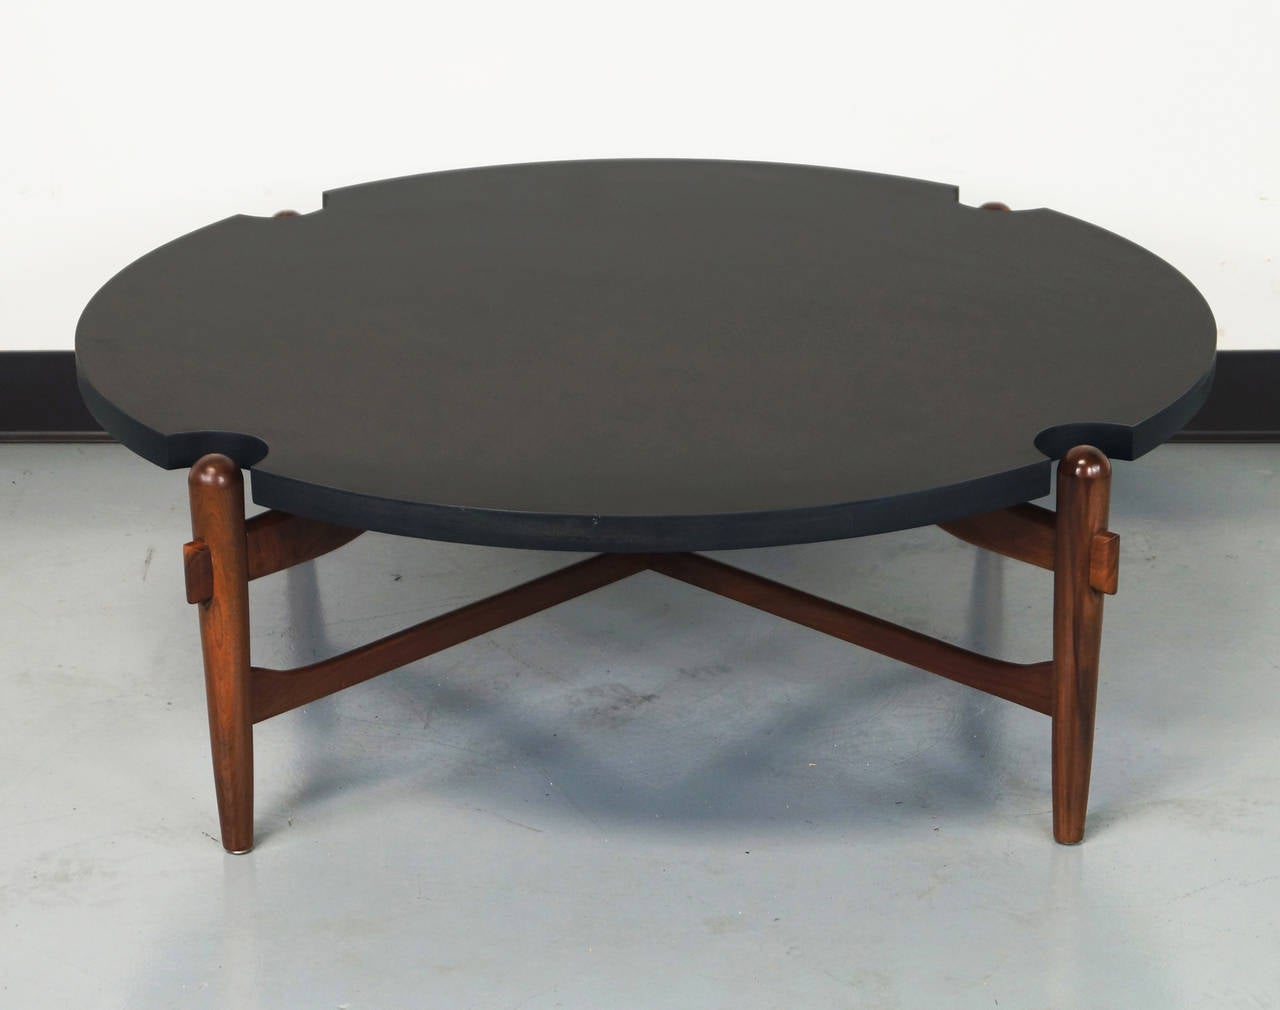 Phenomenal Greta Grossman Coffee Table Rascalartsnyc Gmtry Best Dining Table And Chair Ideas Images Gmtryco